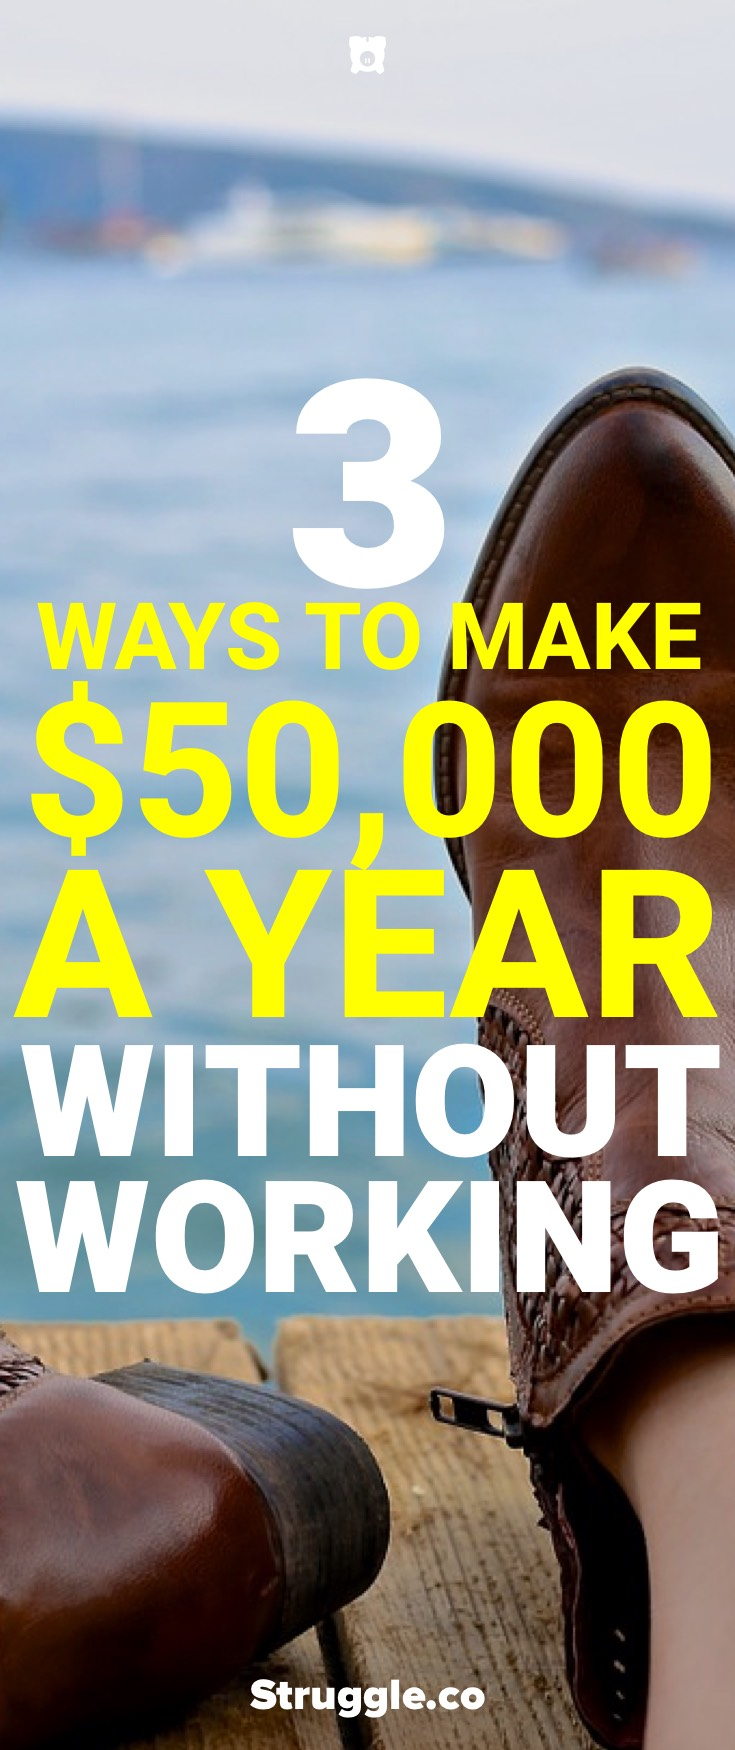 3 Ways to Make $50,000 a Year Without Working